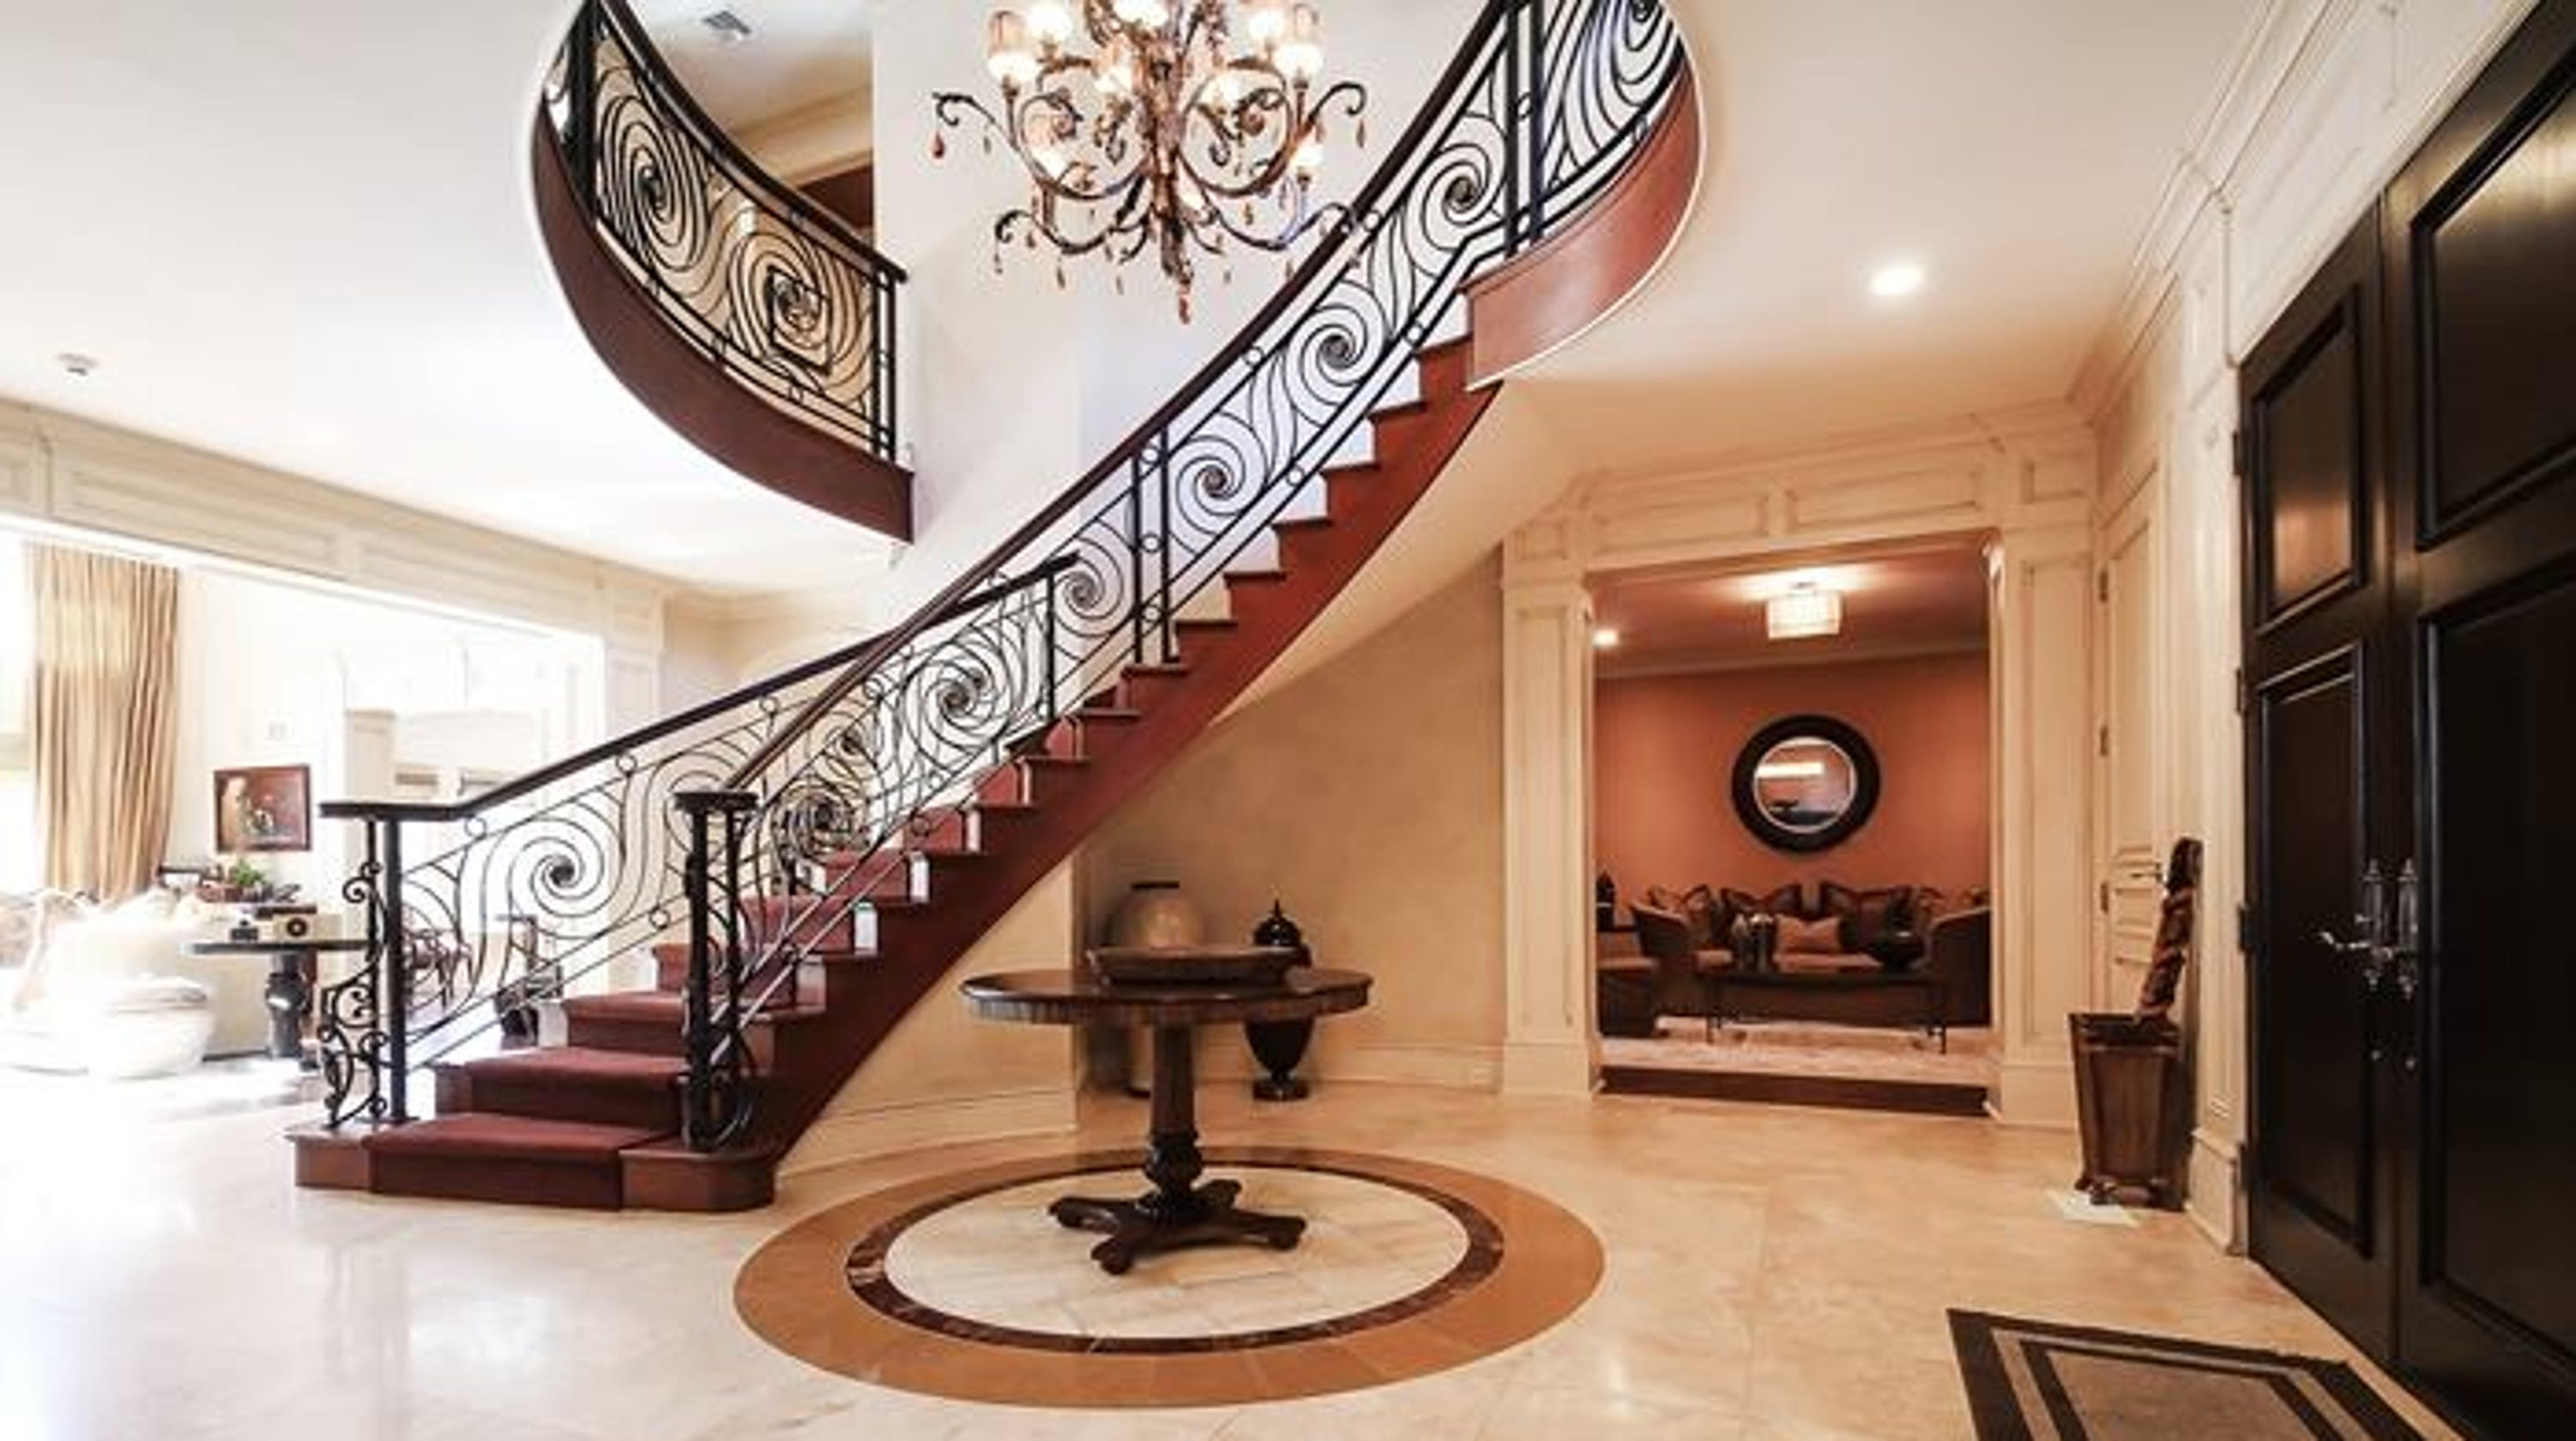 Patrick Ewing Cresskill Nj Mansion Is Available To Rent For